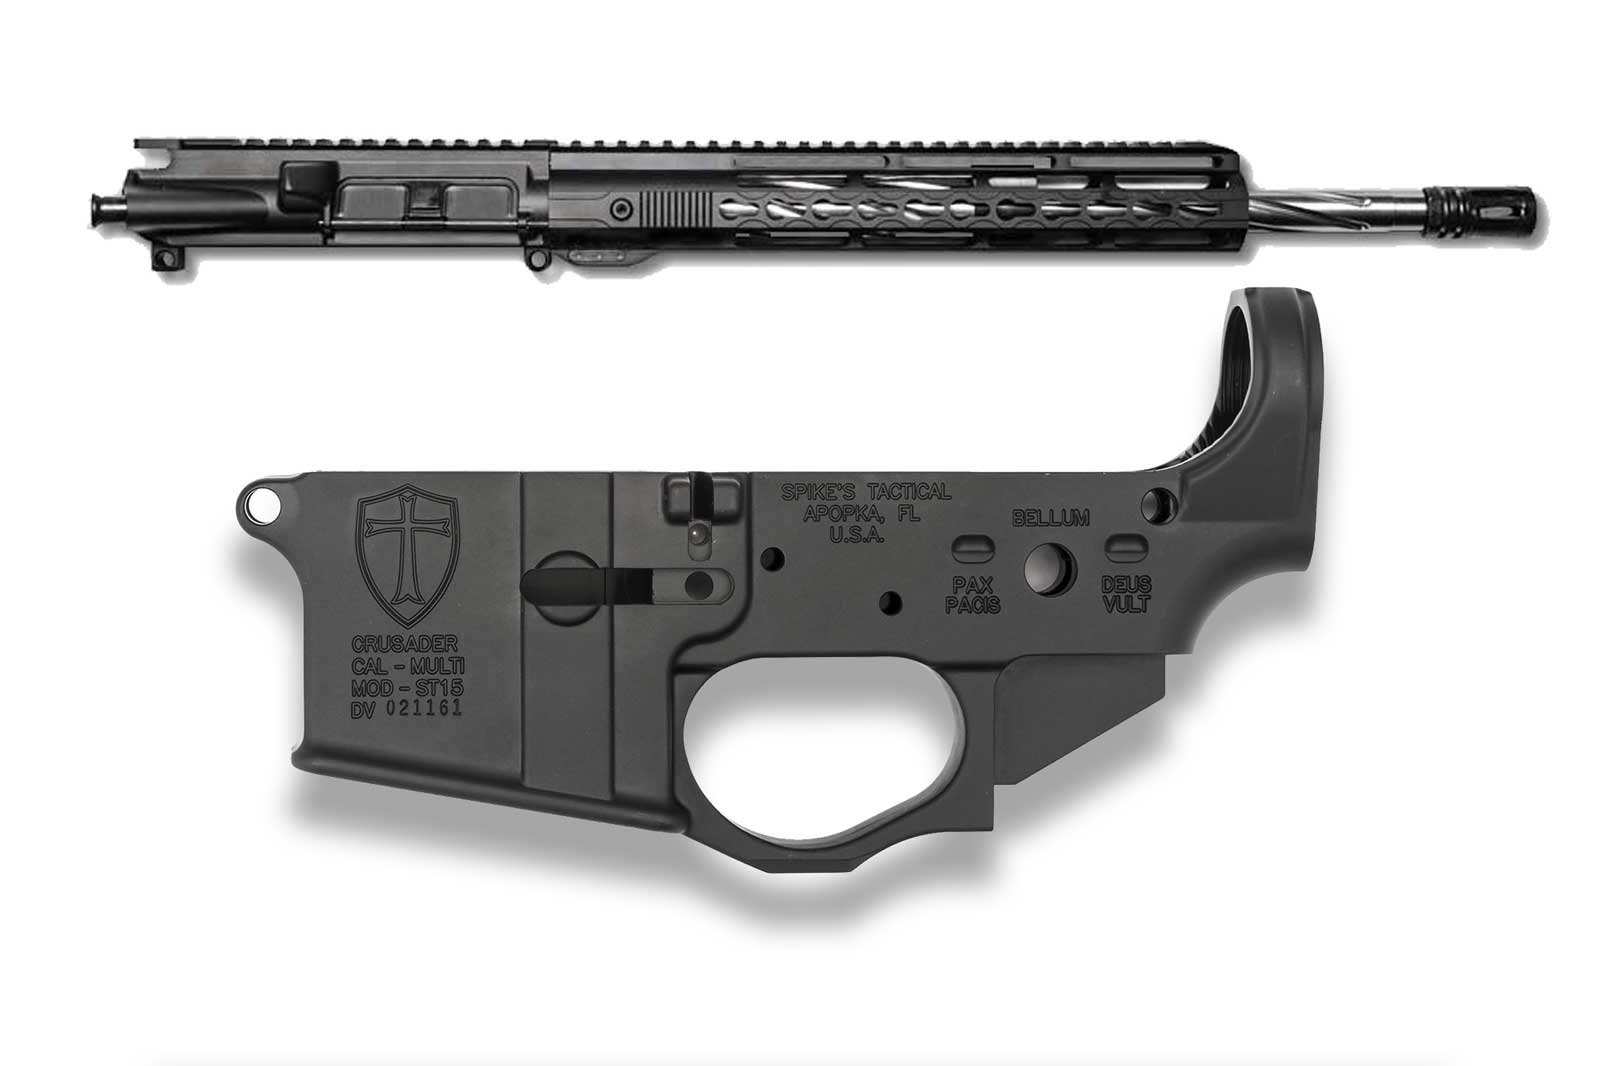 ar15-upper-assembly-with-spikes-tactical-lower-16-223-wylde-spiral-flute-crusader-160368